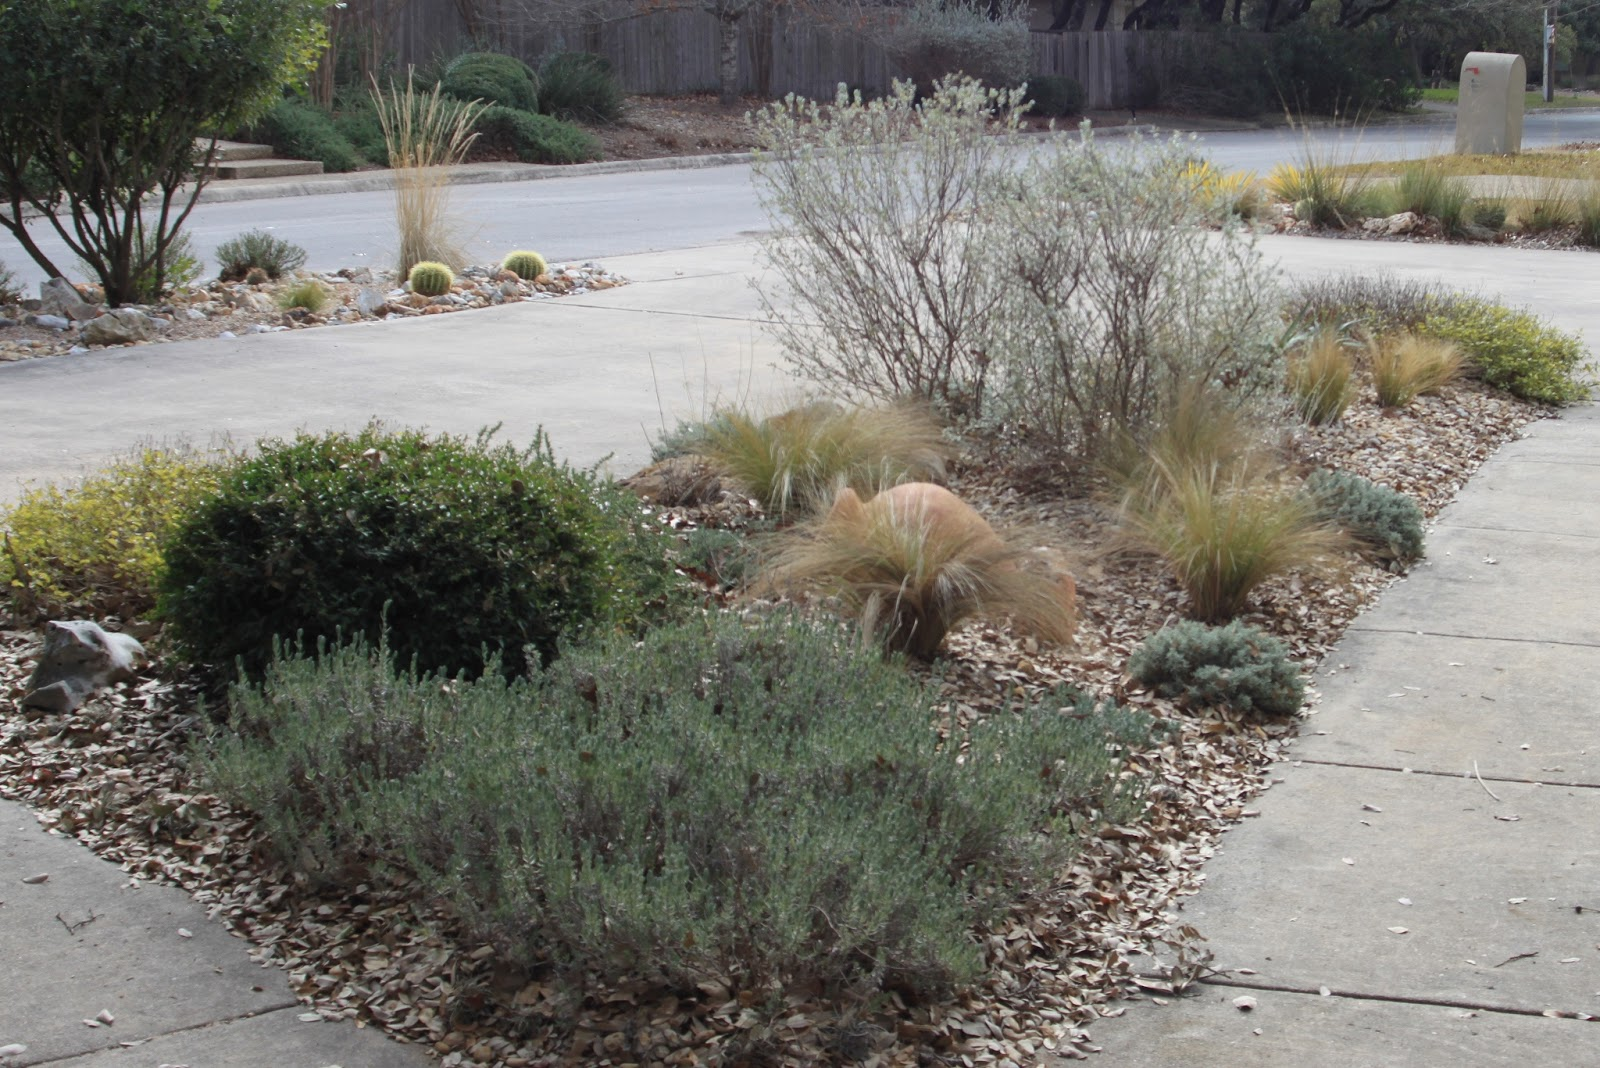 Rock oak deer winter garden projects removing texas sage for Winter garden